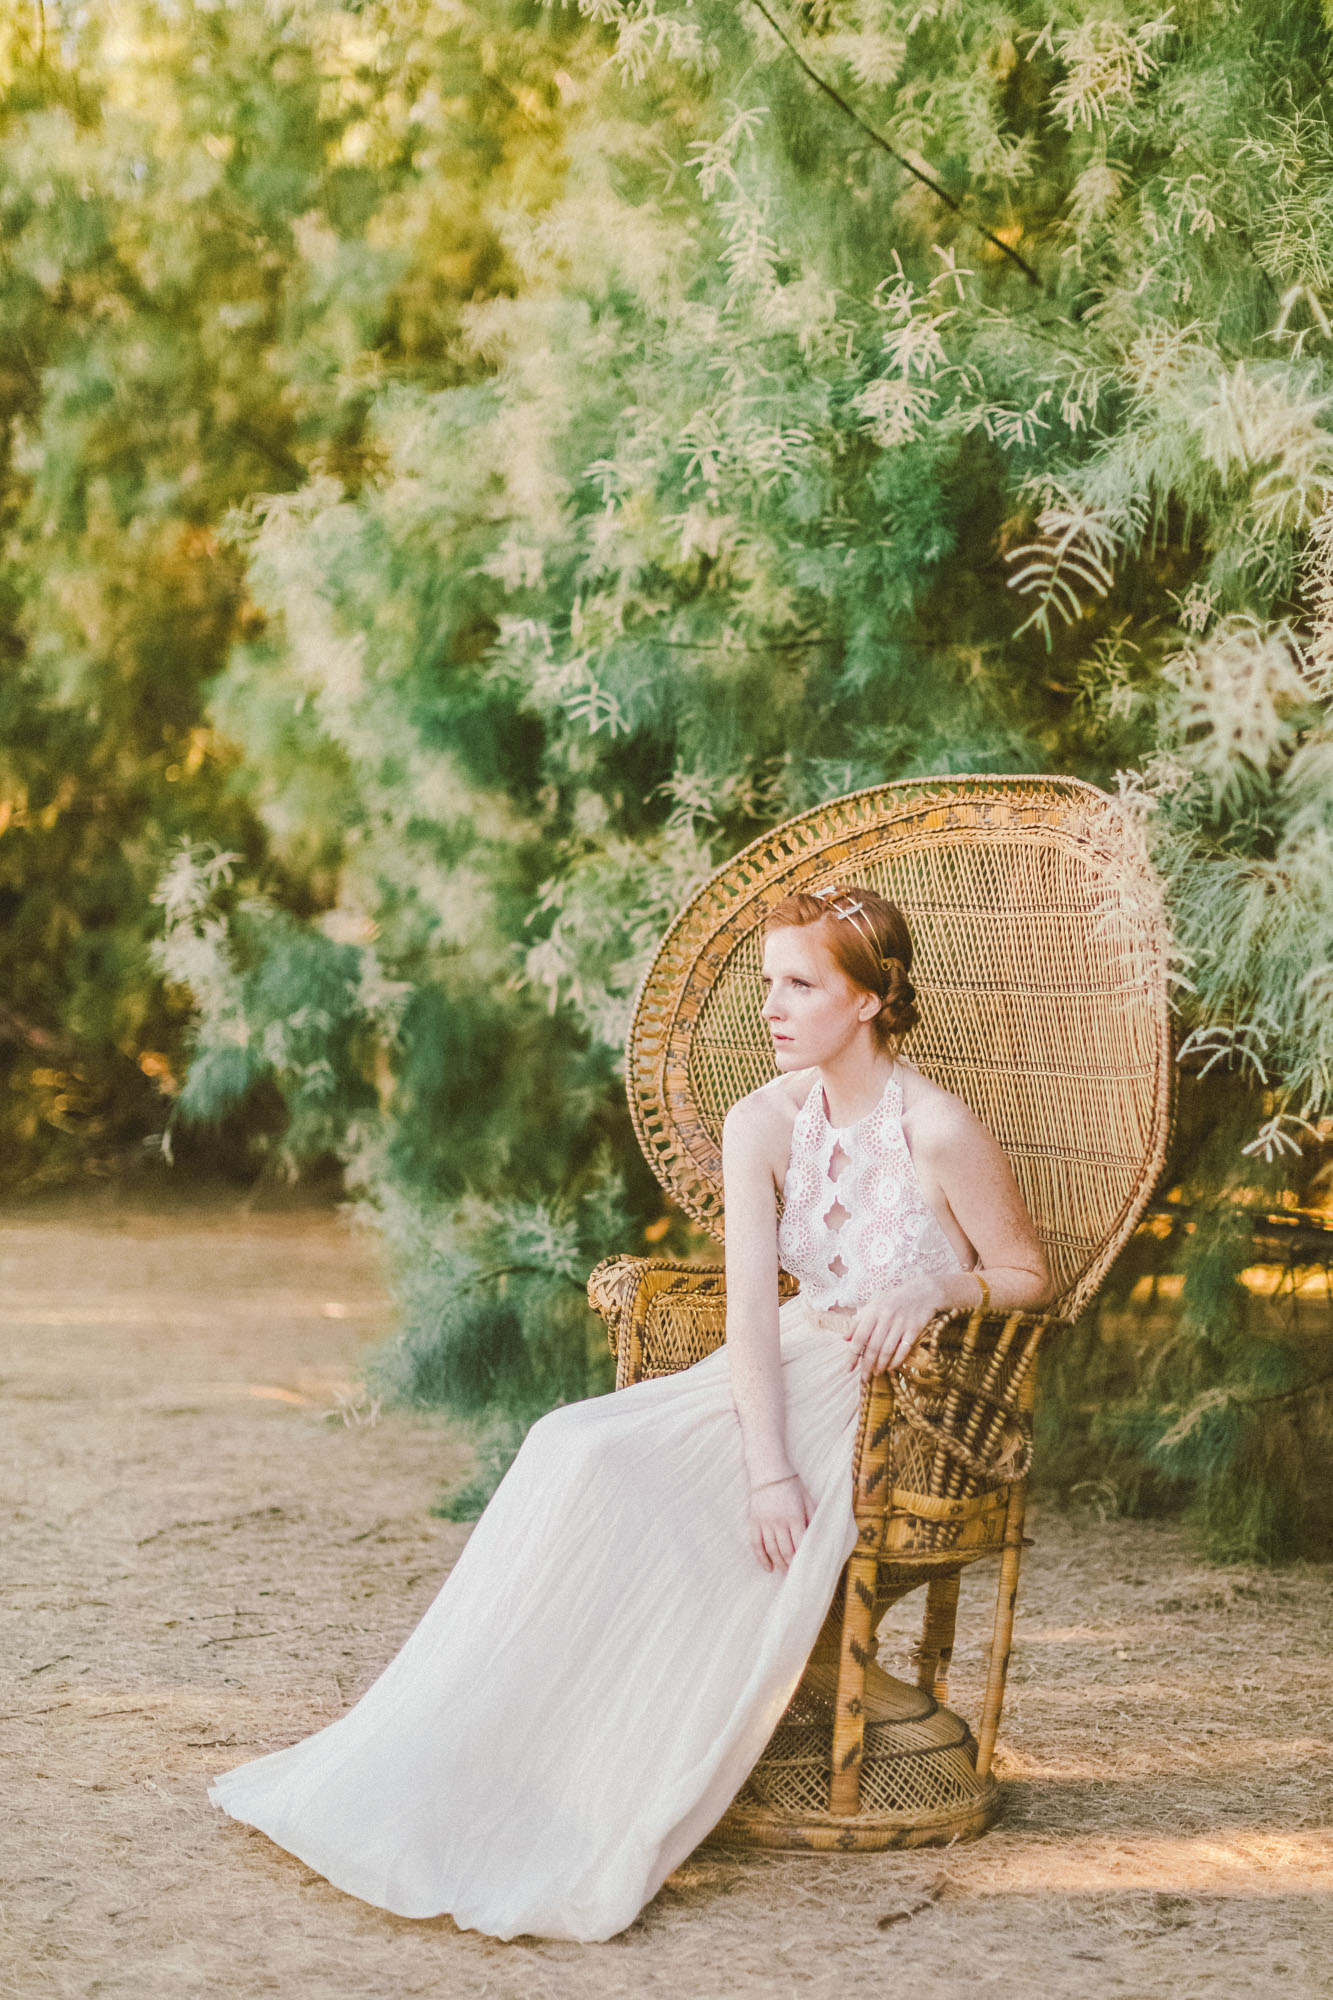 Glamorous chic bride wedding inspiration for california